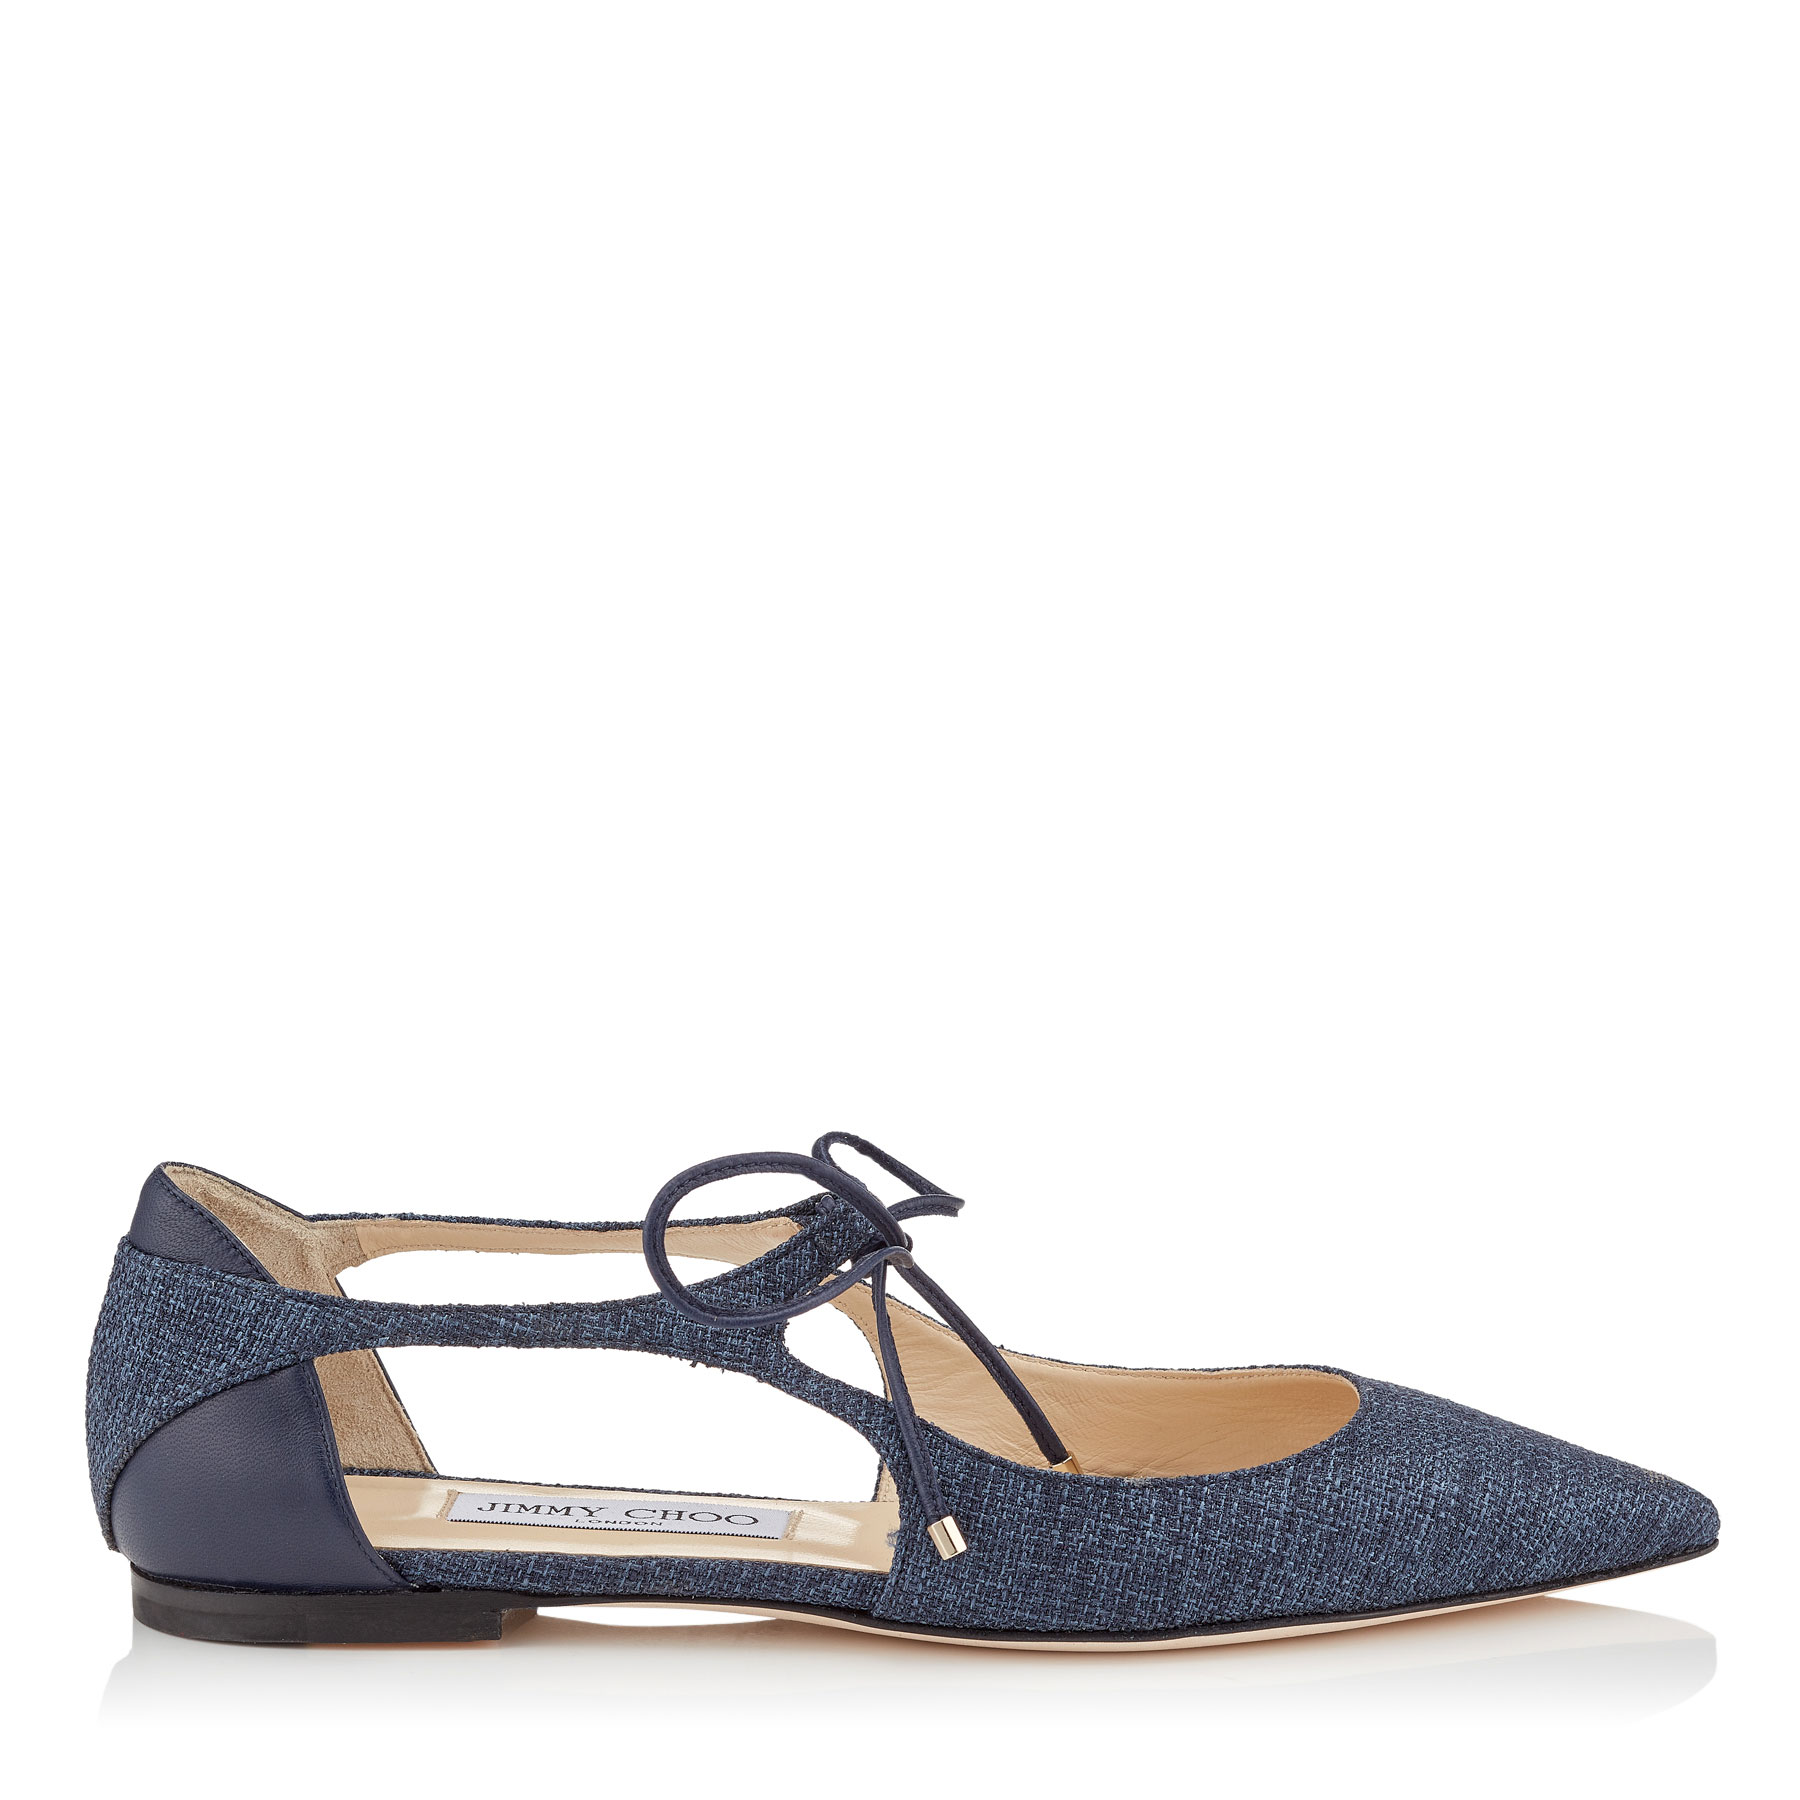 VANESSA FLAT Navy Tweedy Canvas and Nappa Leather Pointy Toe Flats by Jimmy Choo